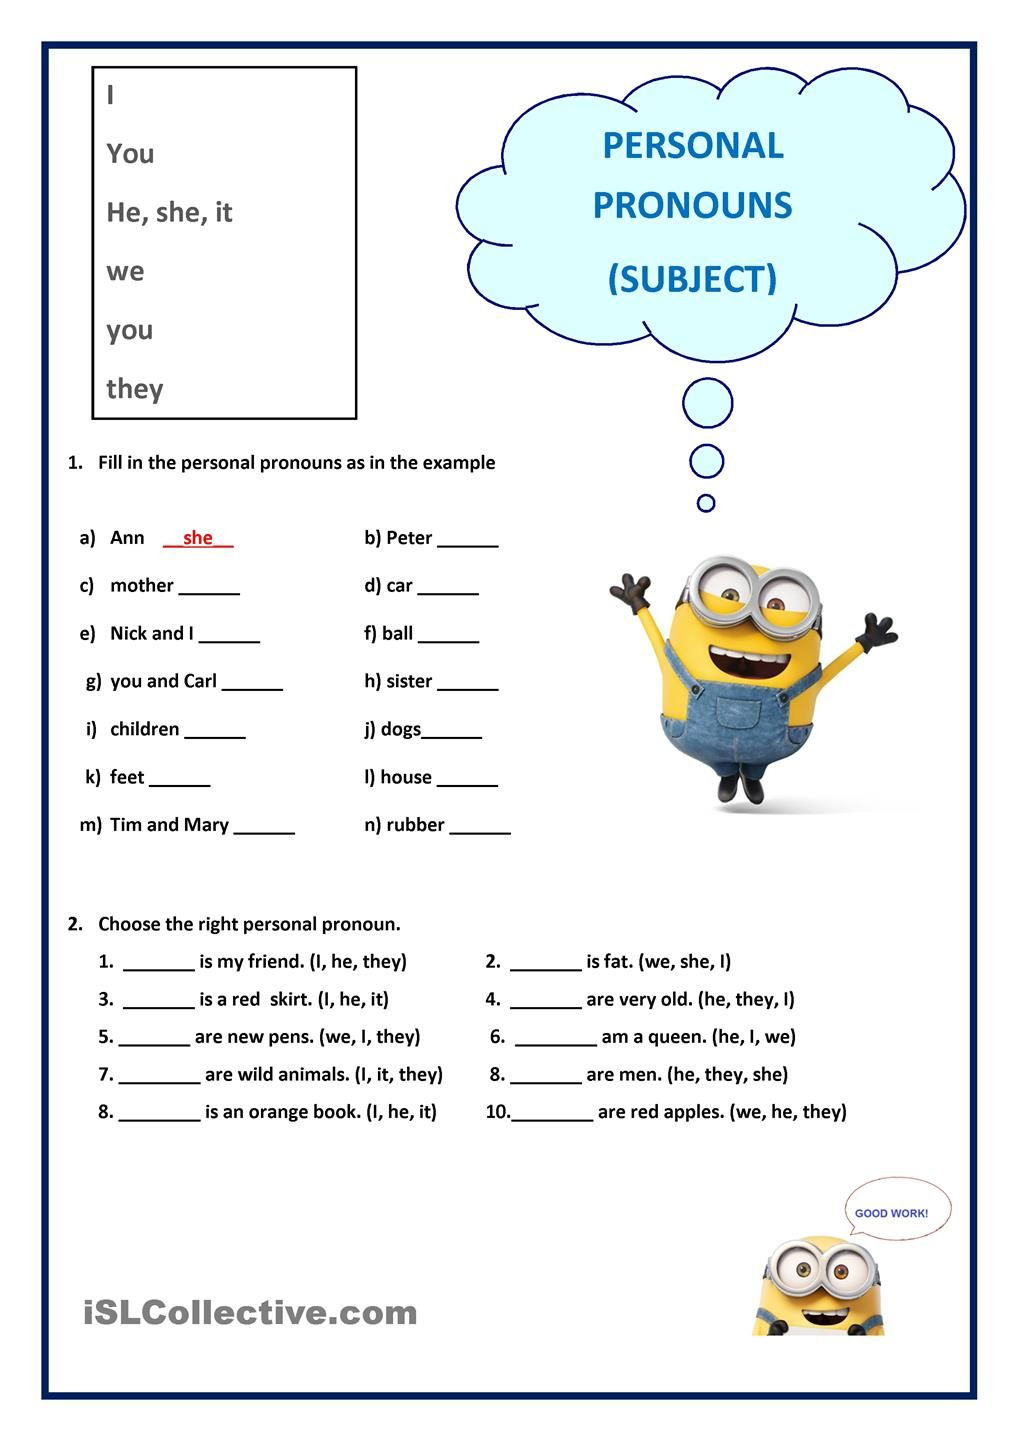 Pronoun Worksheets for 2nd Grade Personal Pronouns Subject